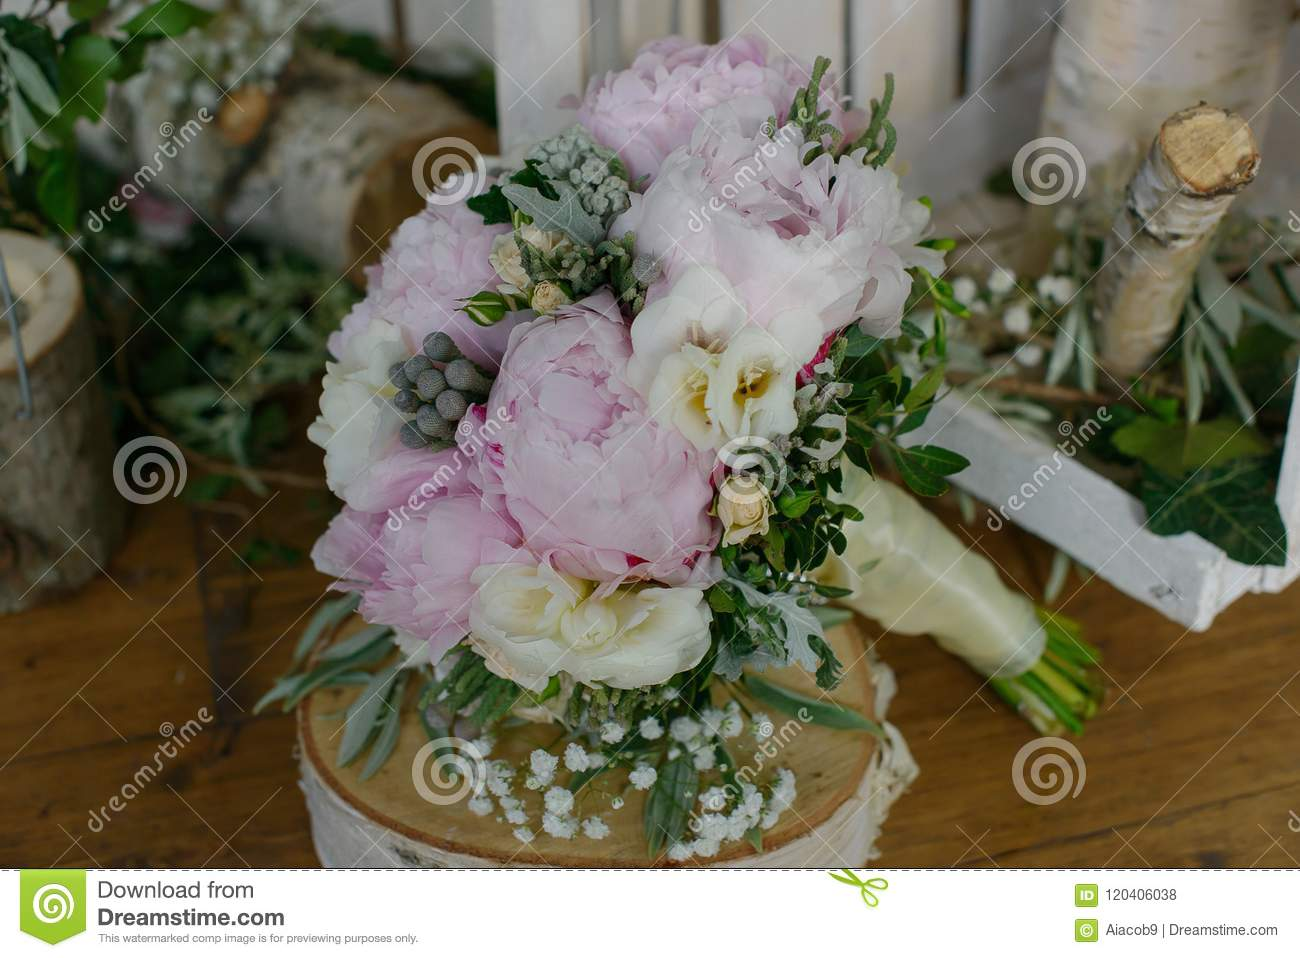 Pale Pink Colored Peonies Freesias And Greenery Bouquet Sitting On Top Of A Rustic Wooden Table Stock Photo Image Of Blossom Arrangement 120406038